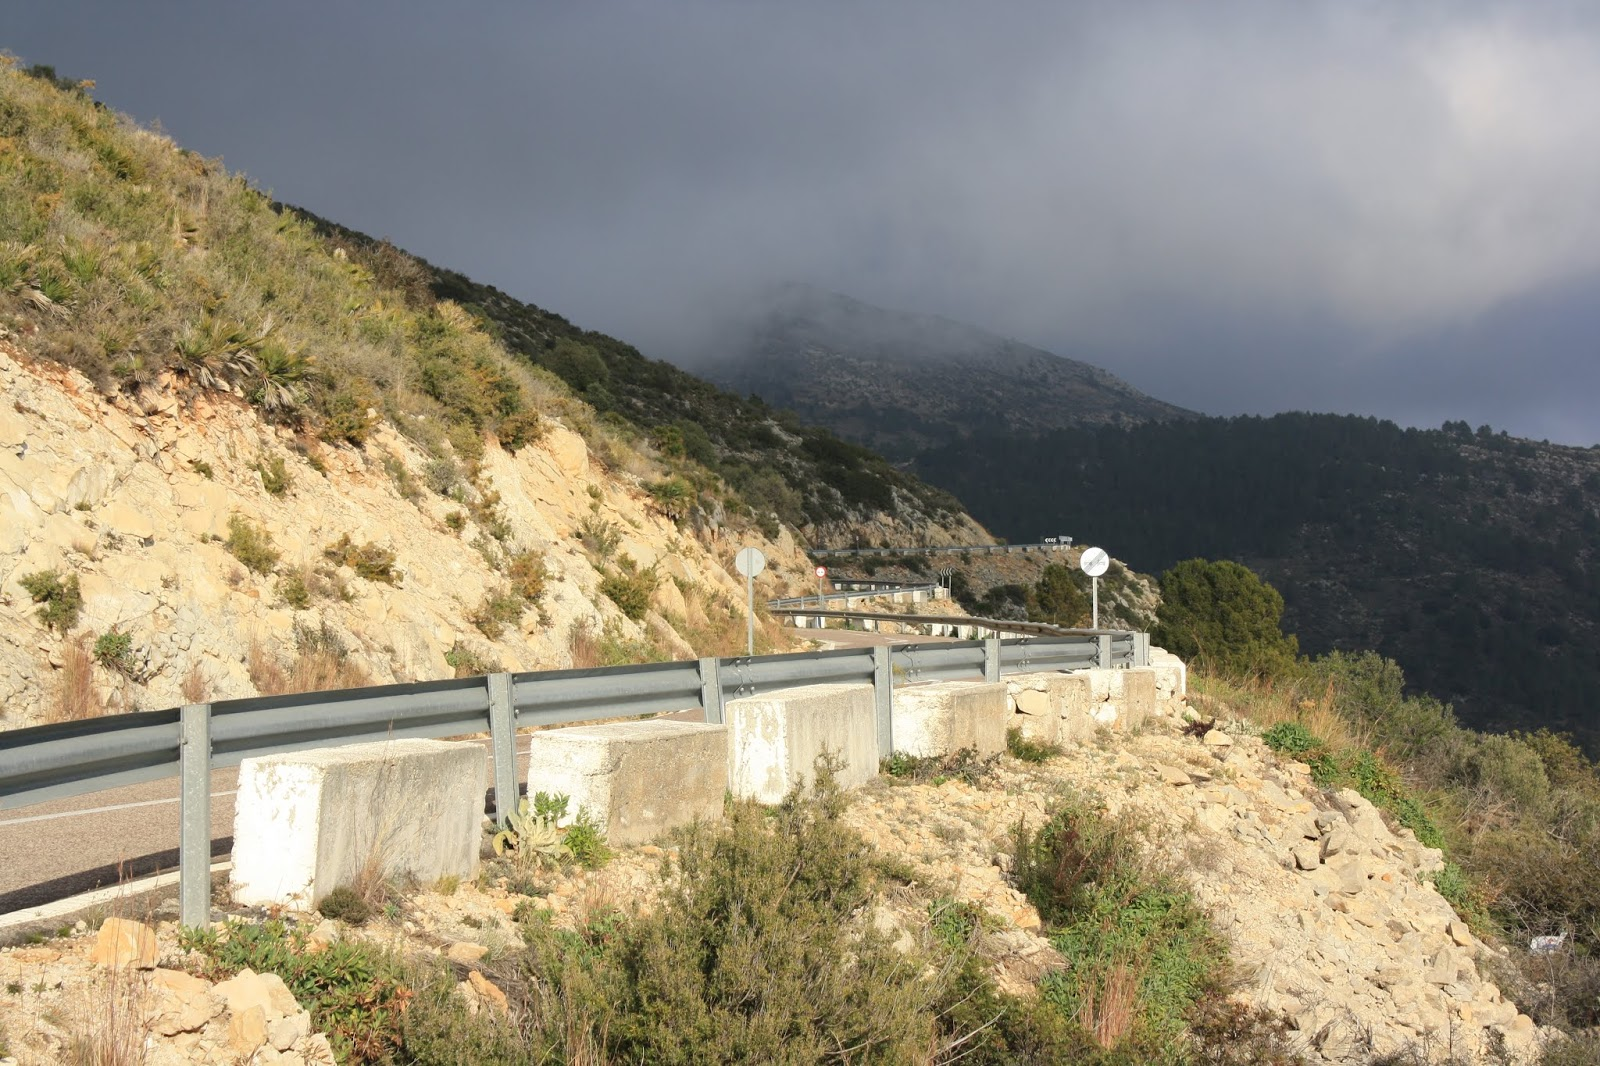 CV-715 road on south side of Coll de Rates, Alicante